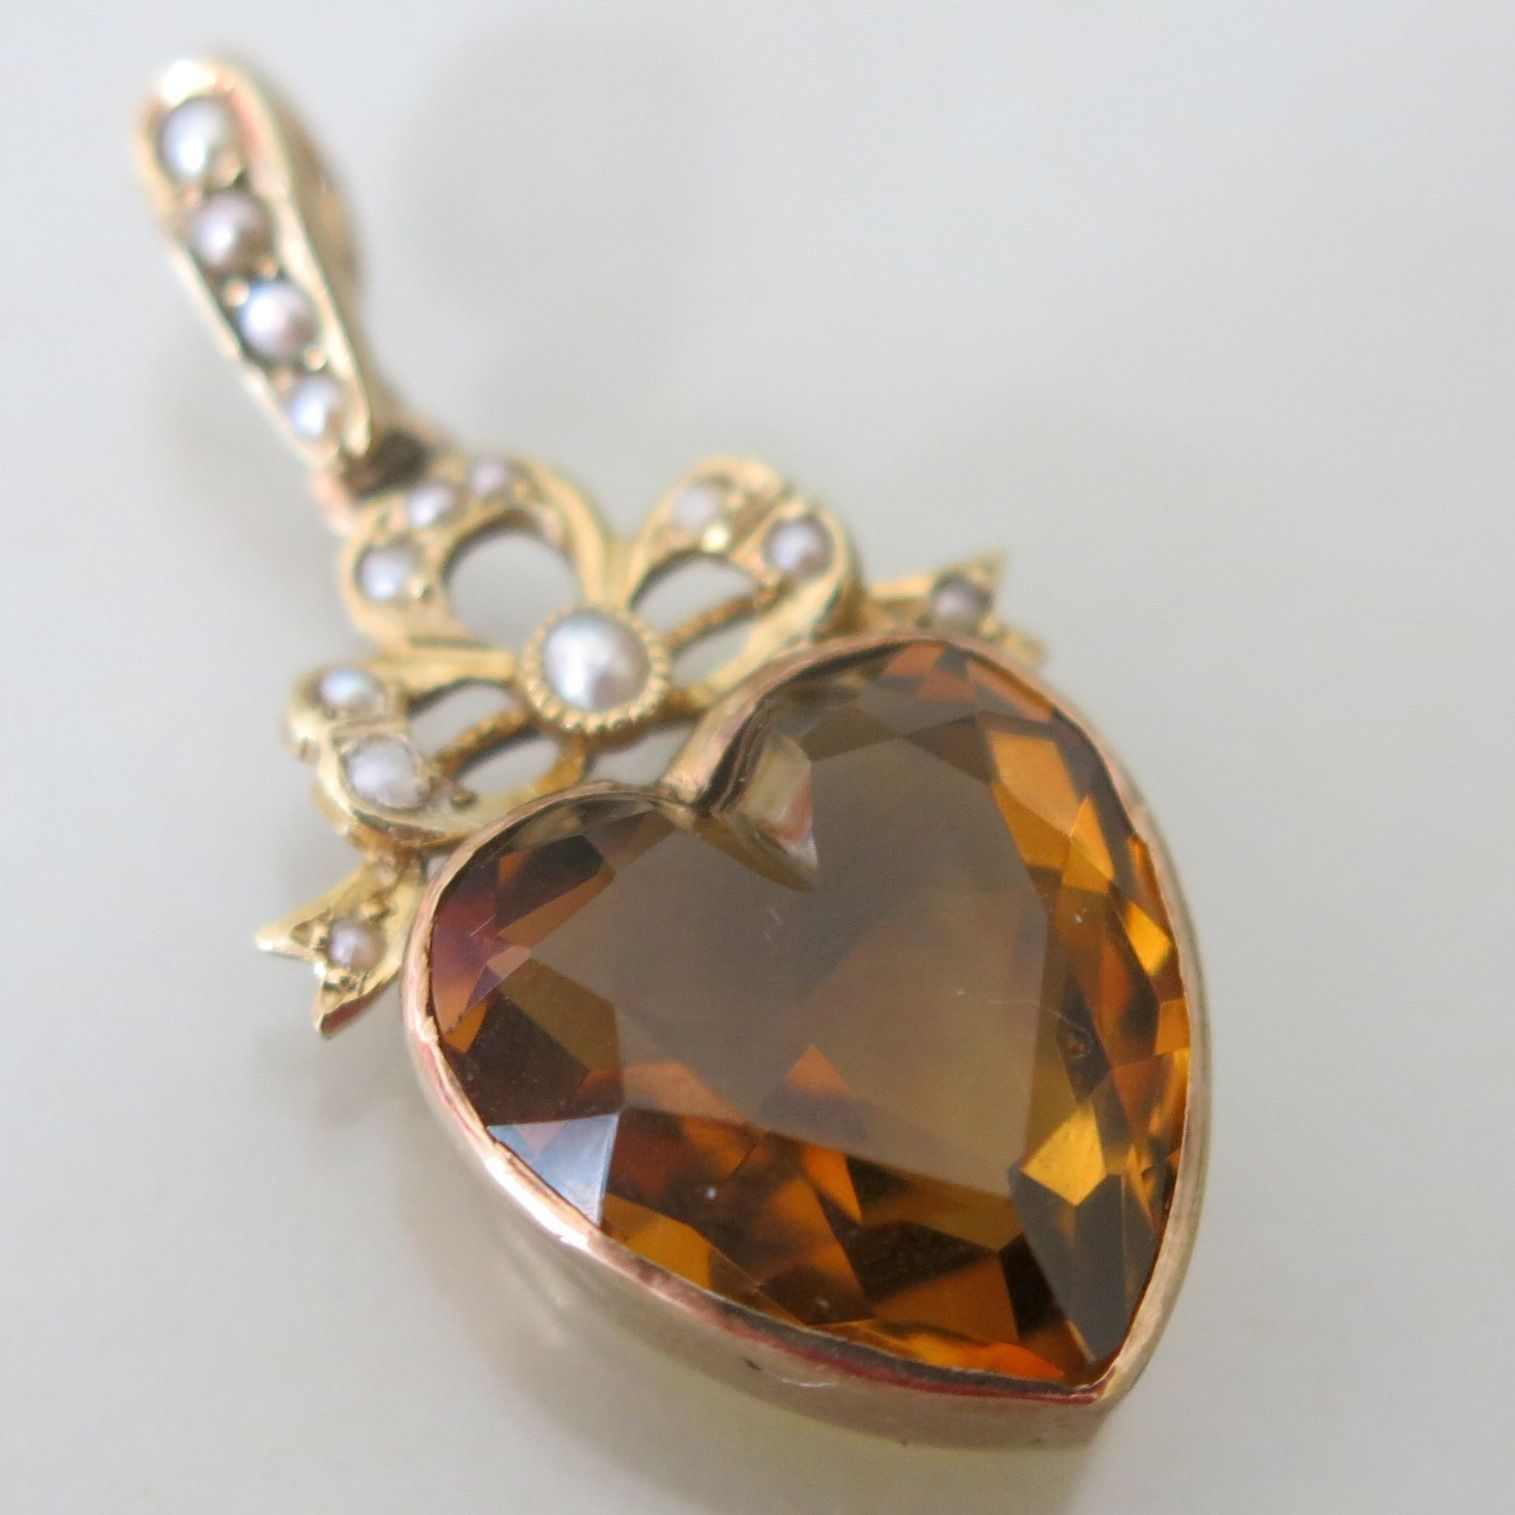 A vintage gold and natural citrine heart pendant from the edwardian a vintage gold and natural citrine heart pendant from the edwardian era mozeypictures Image collections